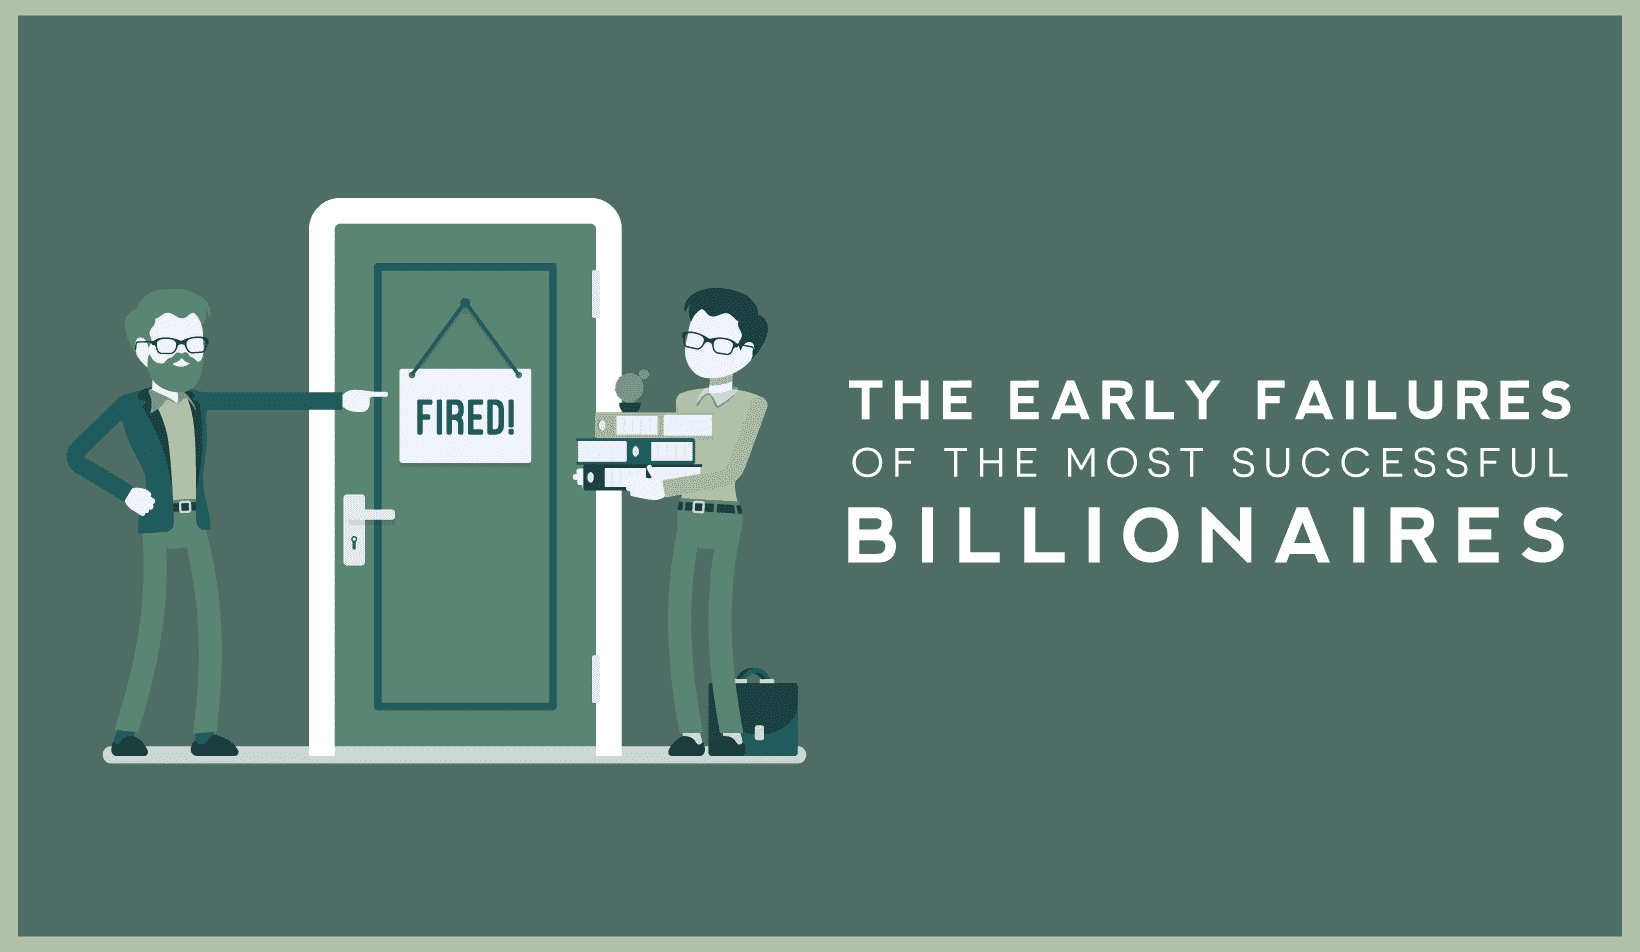 The Early Career Failures of the Most Successful Billionaires